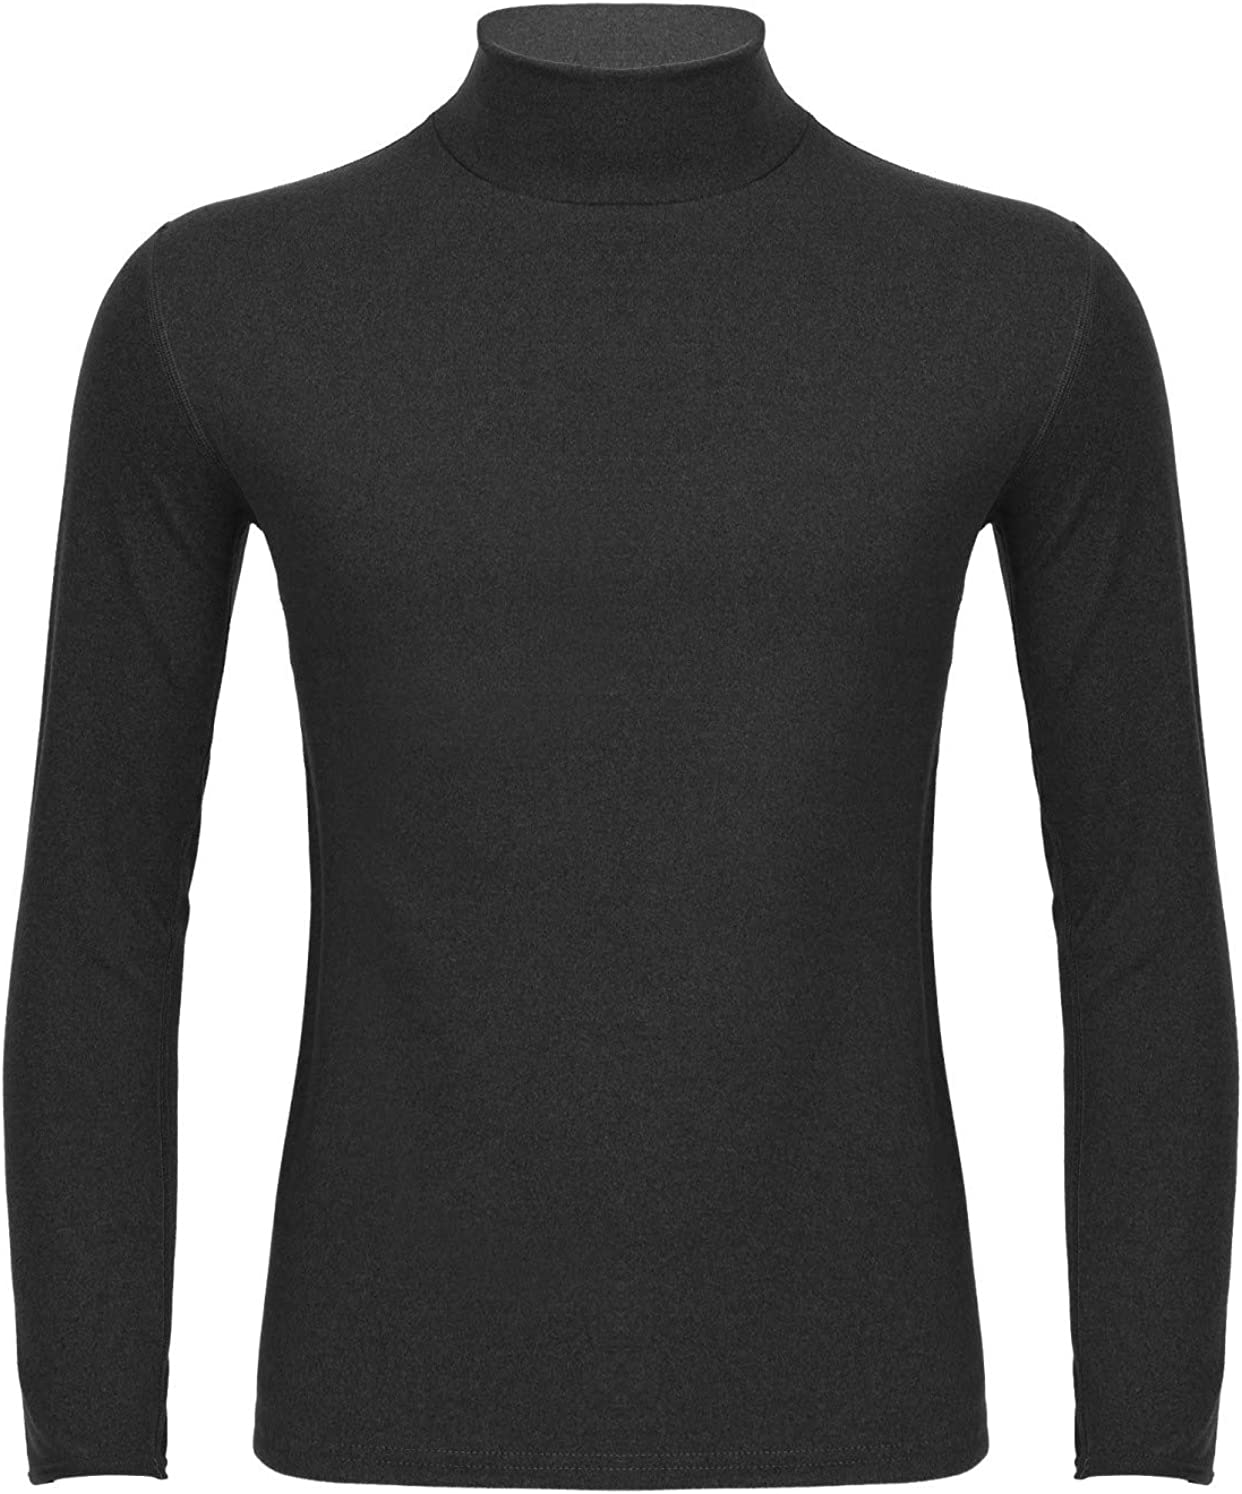 CHICTRY Men's Lightweight Thermal Underwear Tops Base Layer Shirts Turtleneck Long Sleeve Pullover Tops